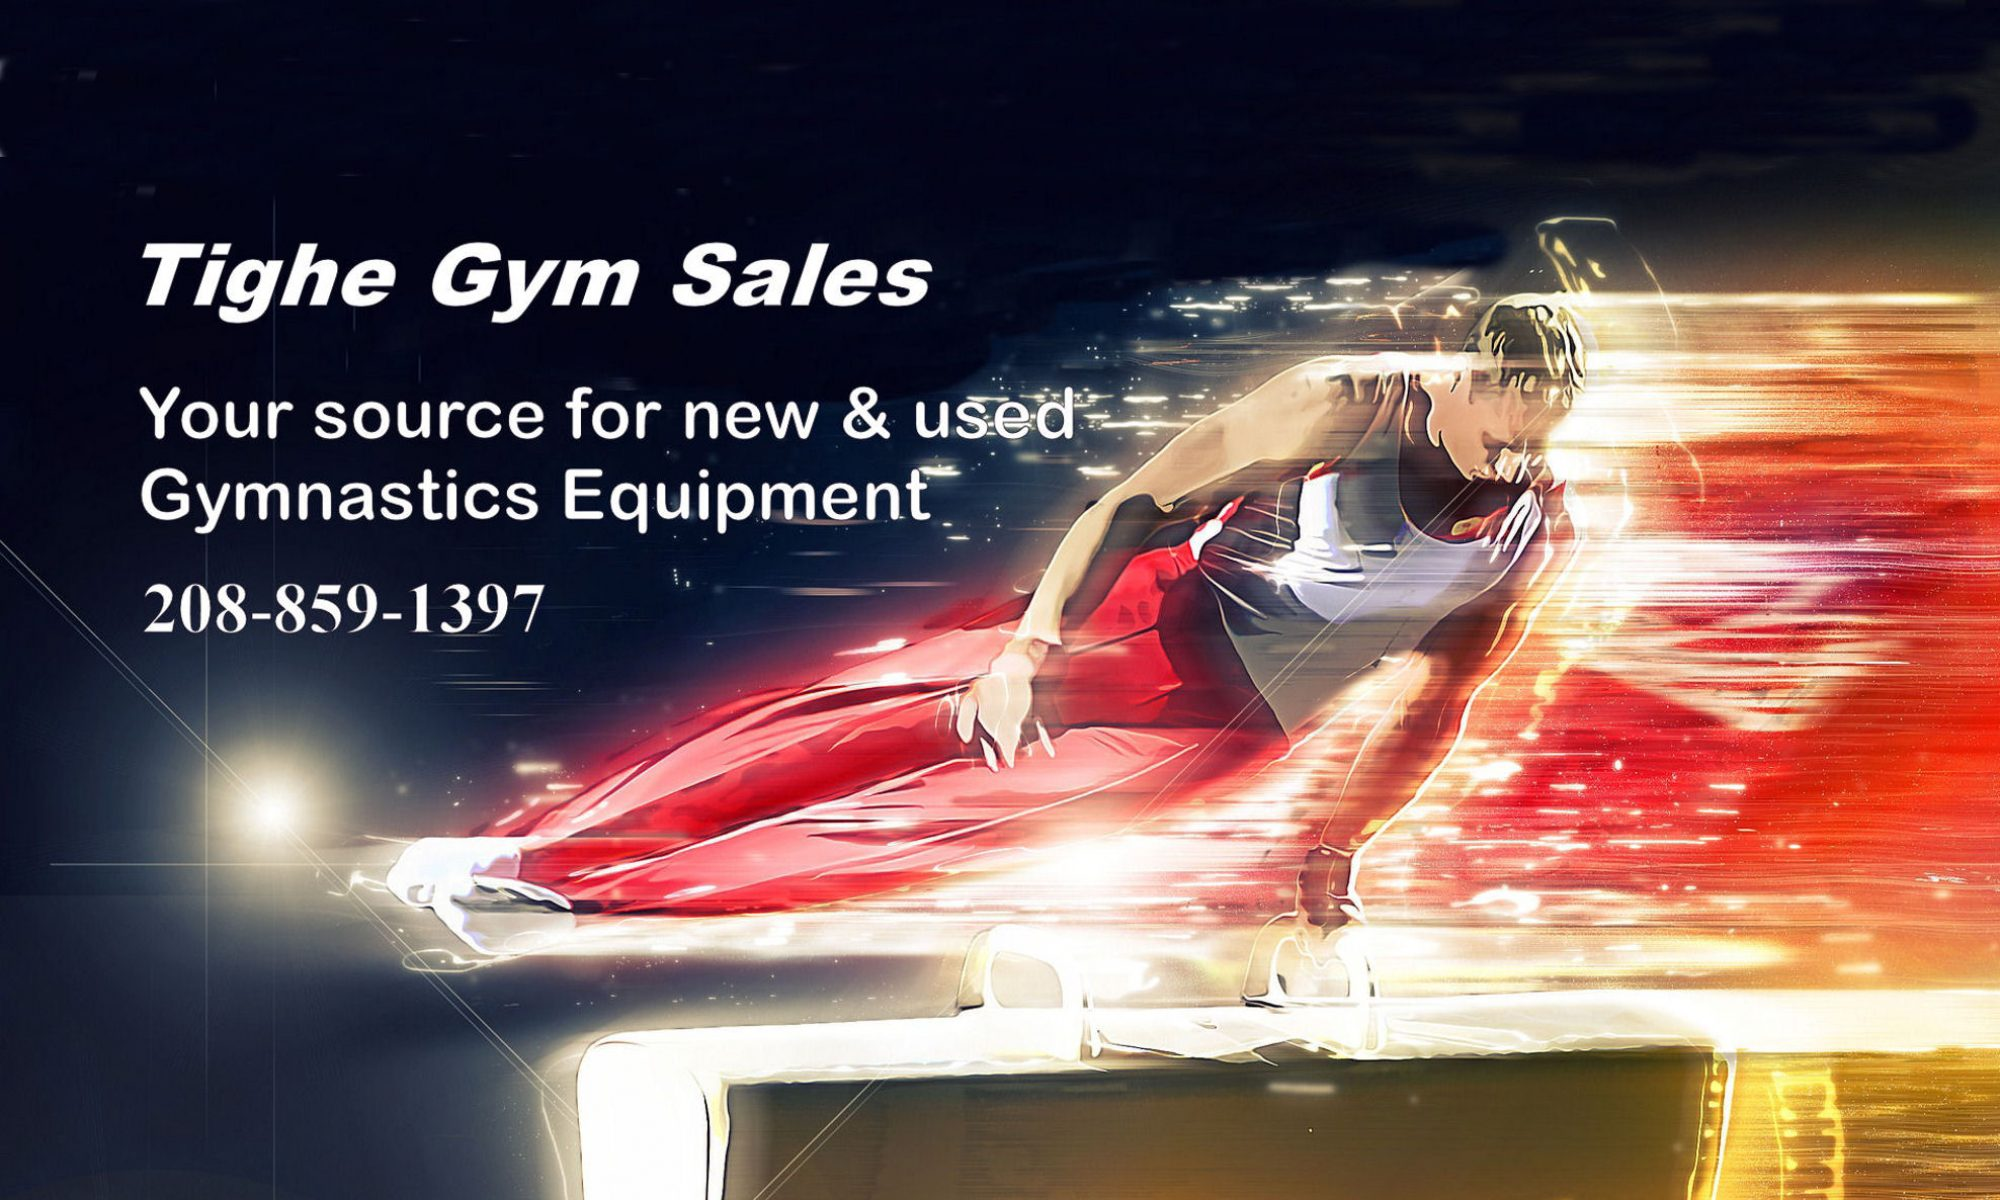 Tighe Gym Sales